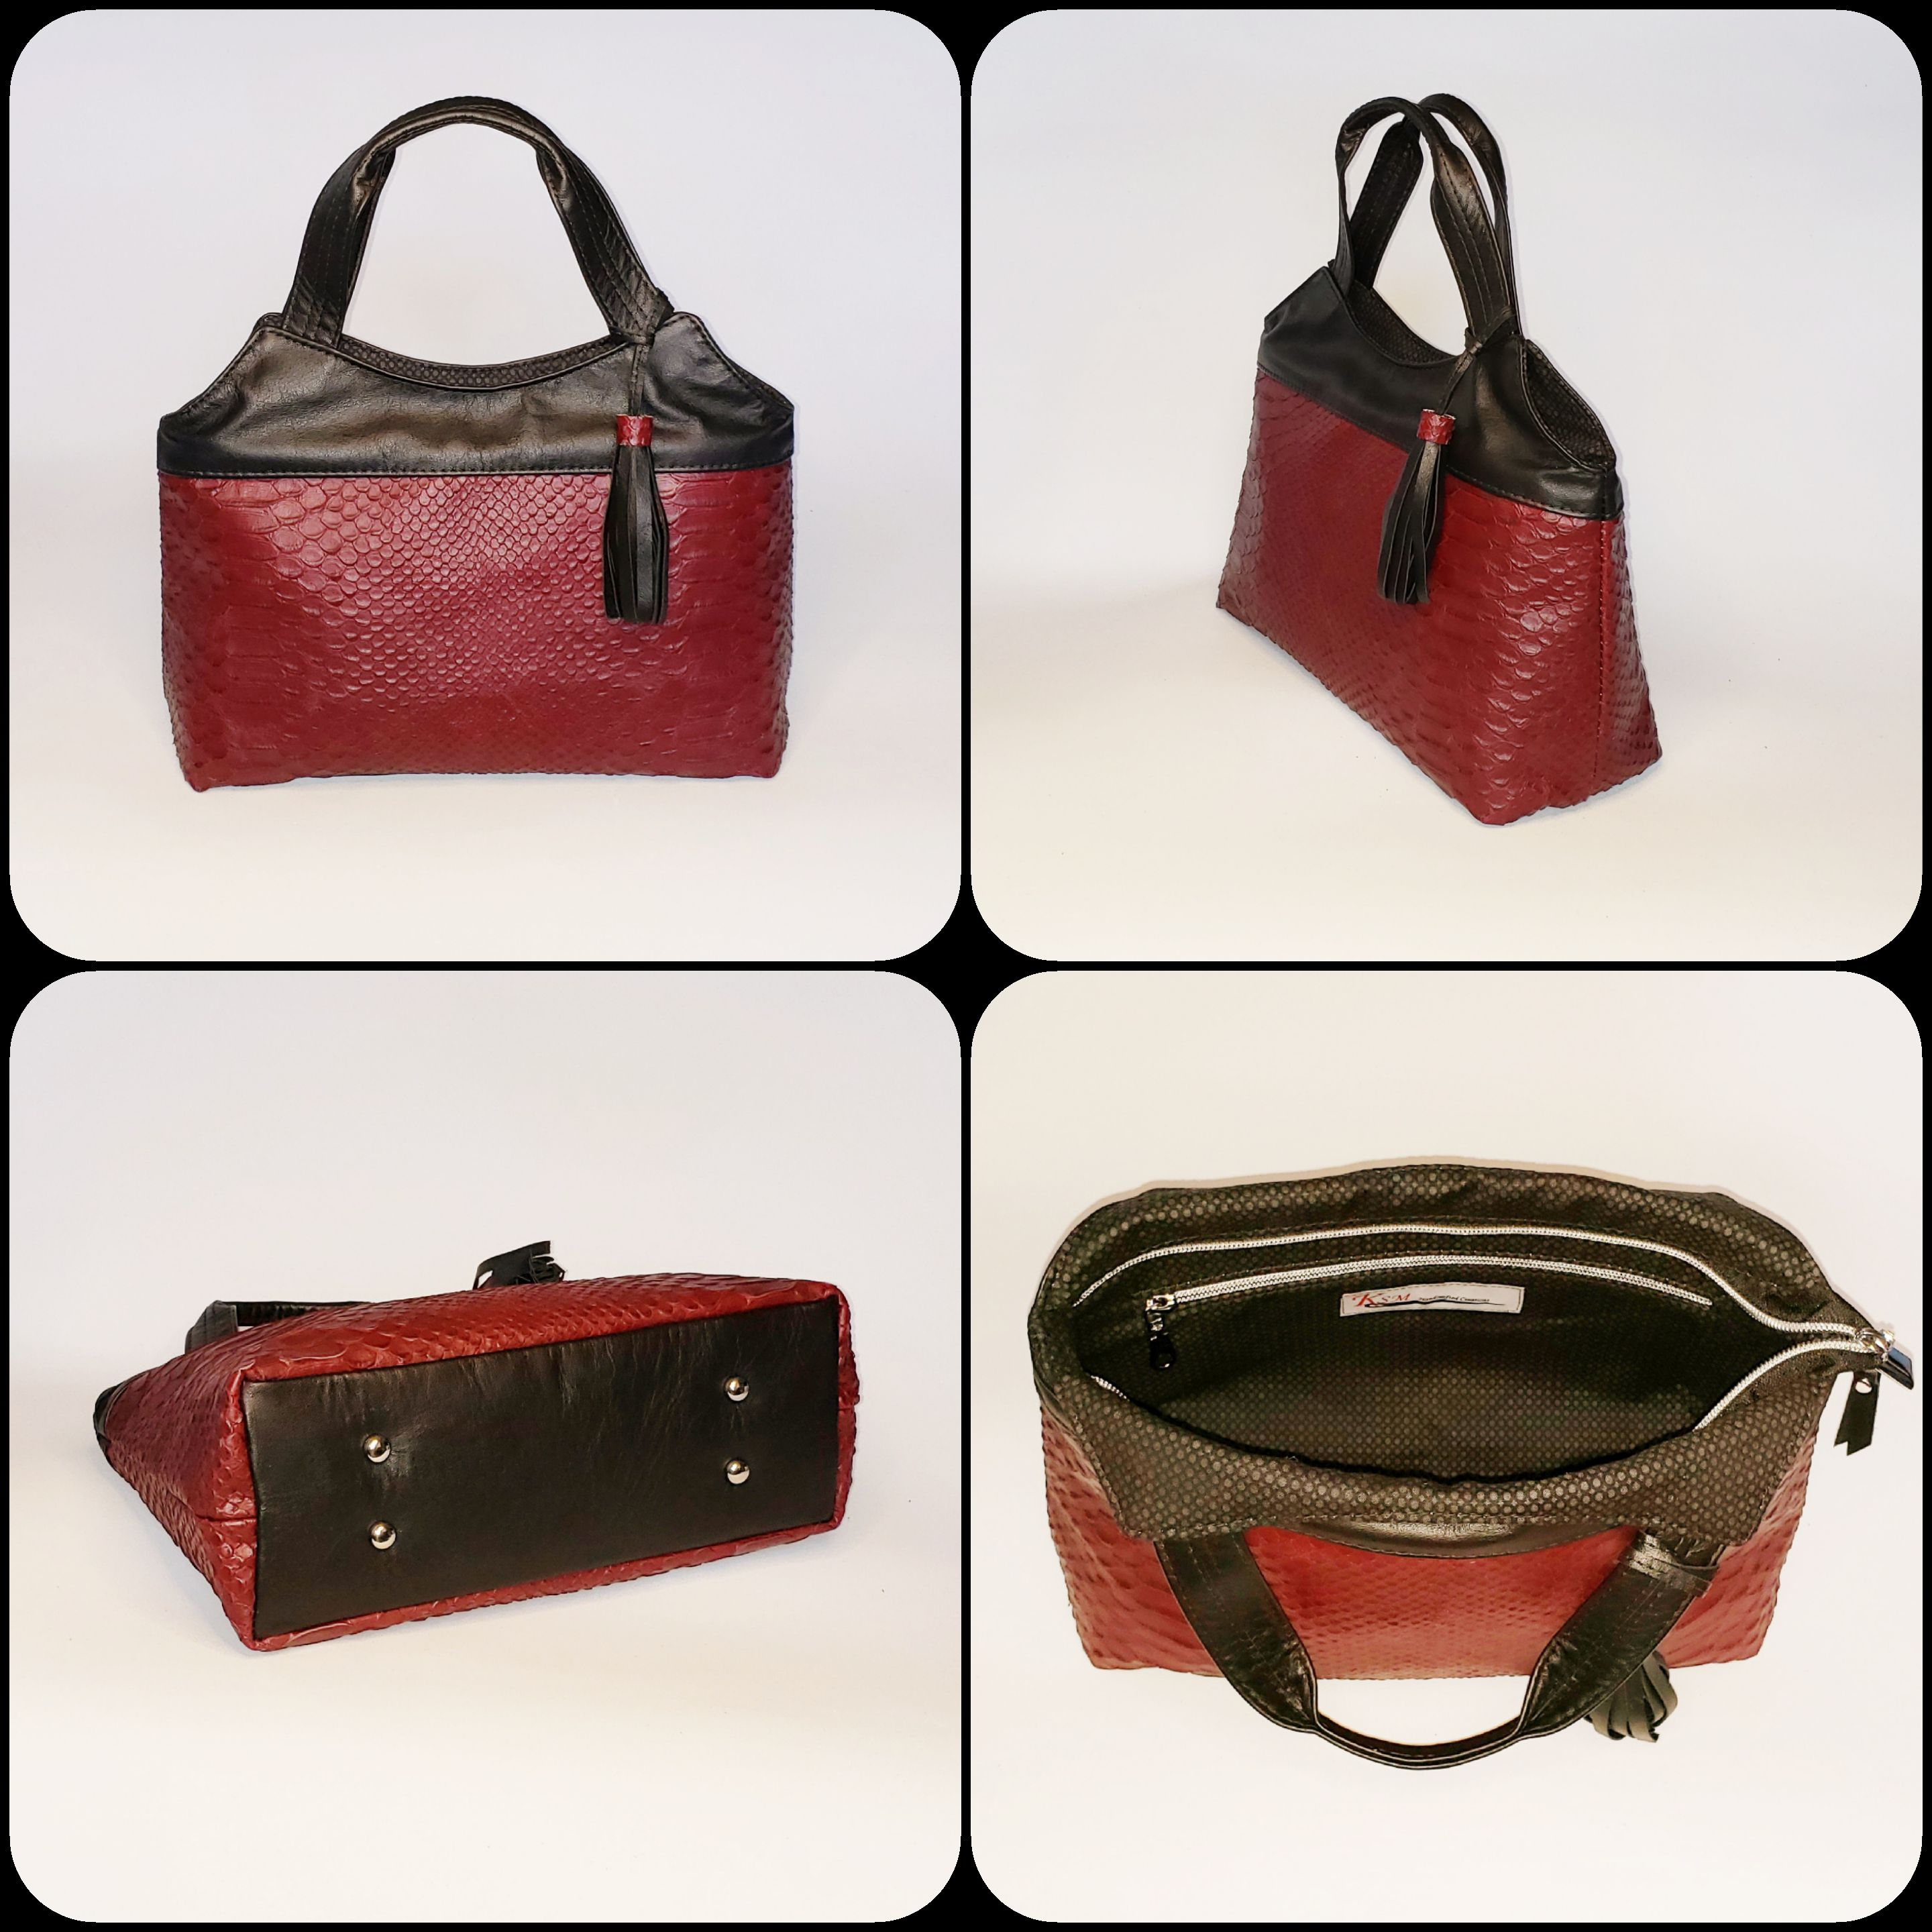 The Hope Handbag from Sewing Patterns by Mrs H, made by Susan McQuone of KSM Handcrafted